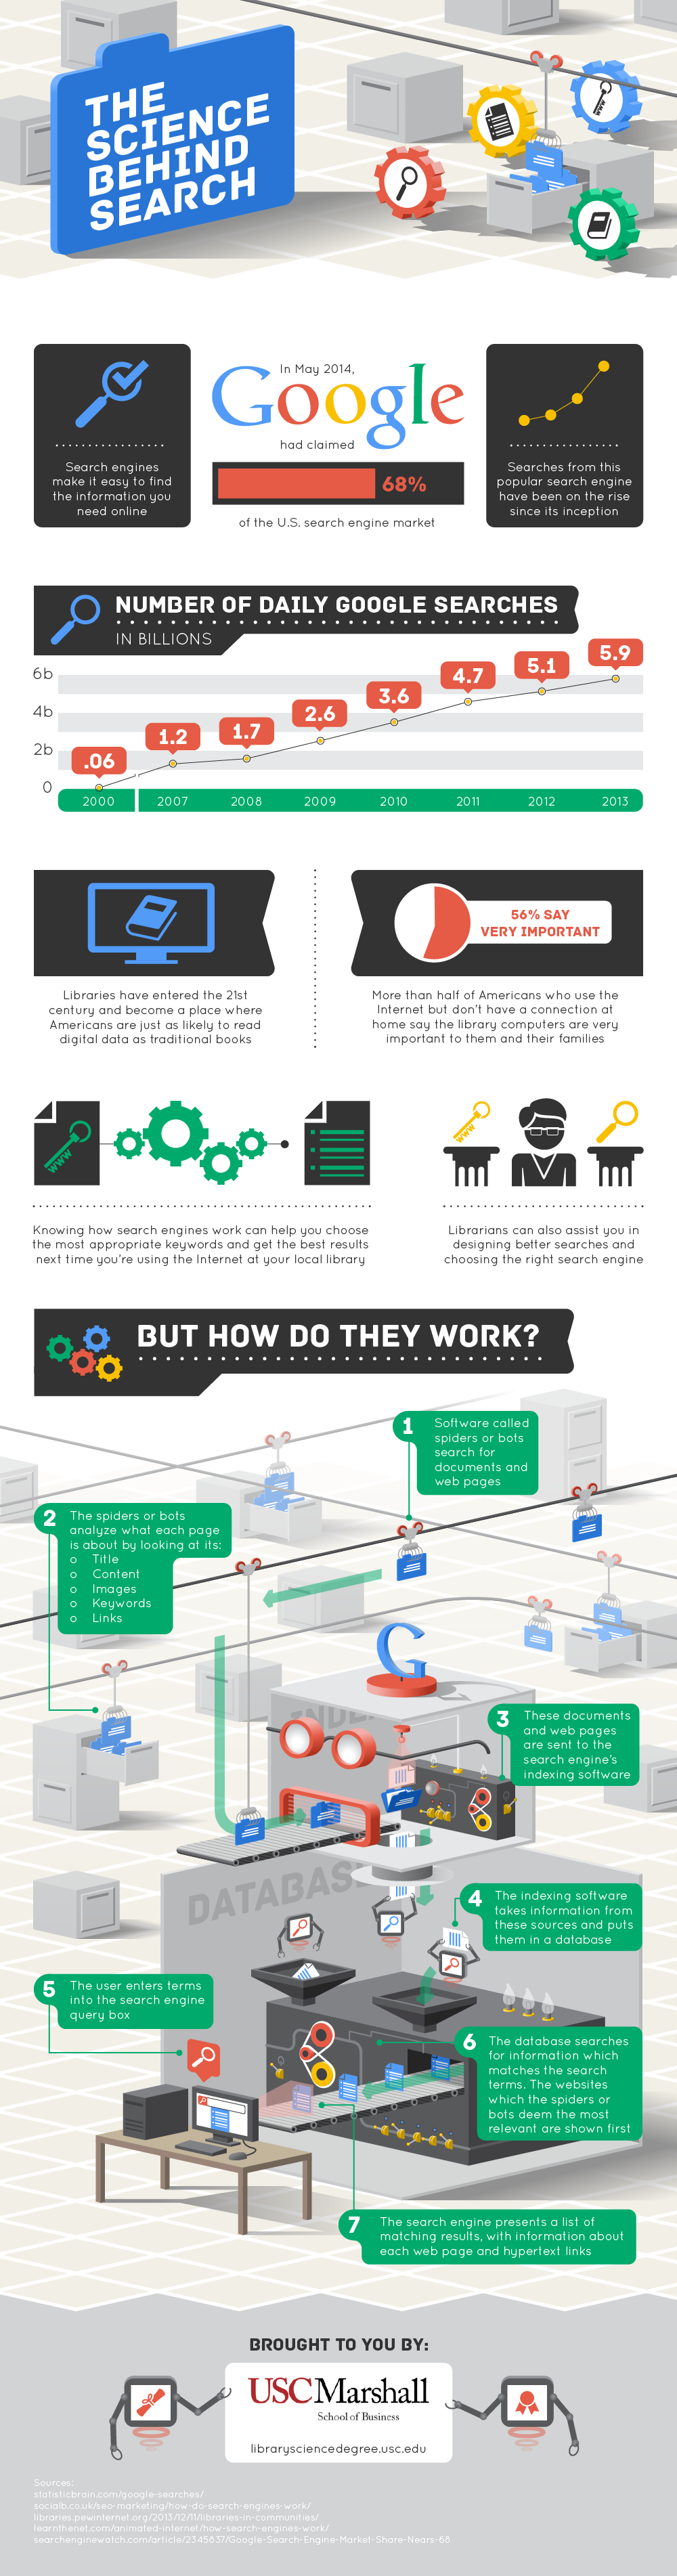 How Search Engines Work USC Marshall Infographic